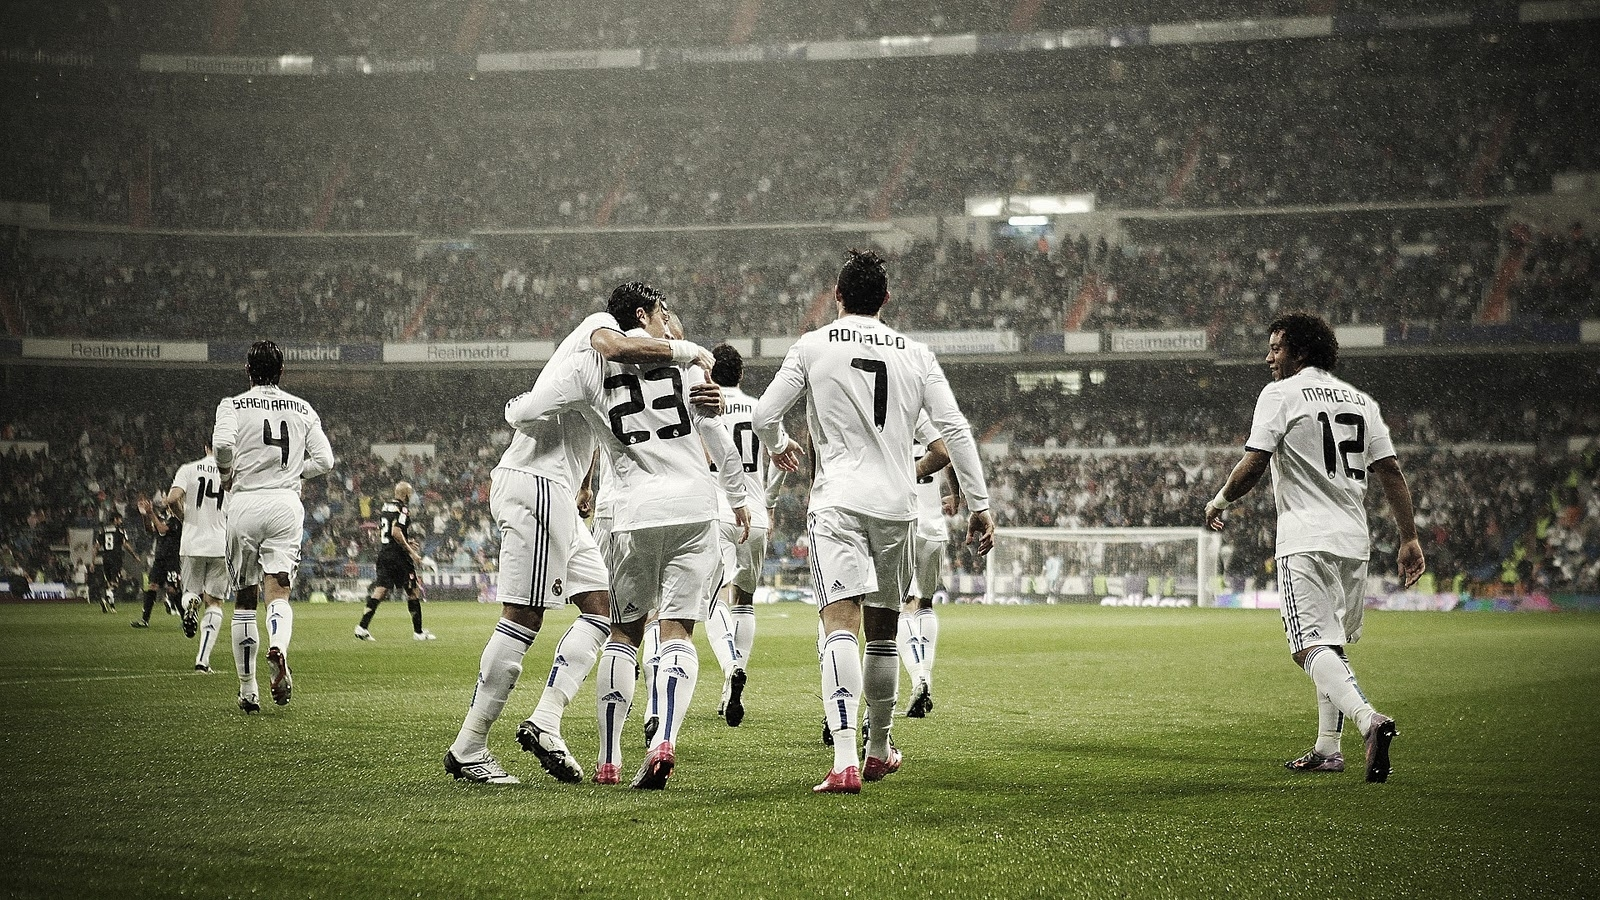 real madrid football team hd wallpaper